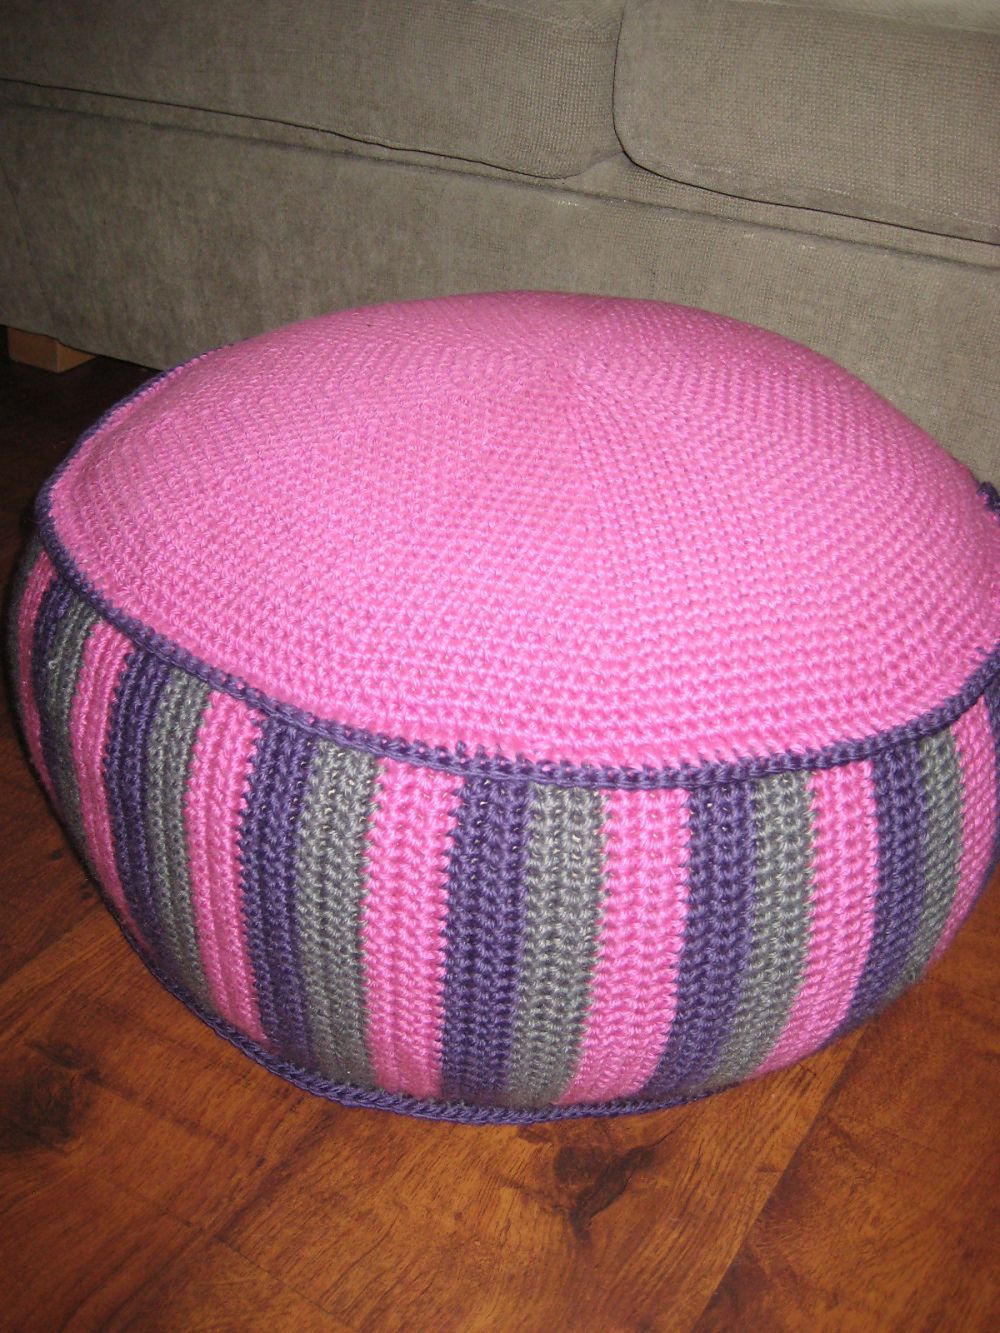 Ravelry: Sitting Bag/ Puff/ Pouf by Sonea Delvon | granny square ...